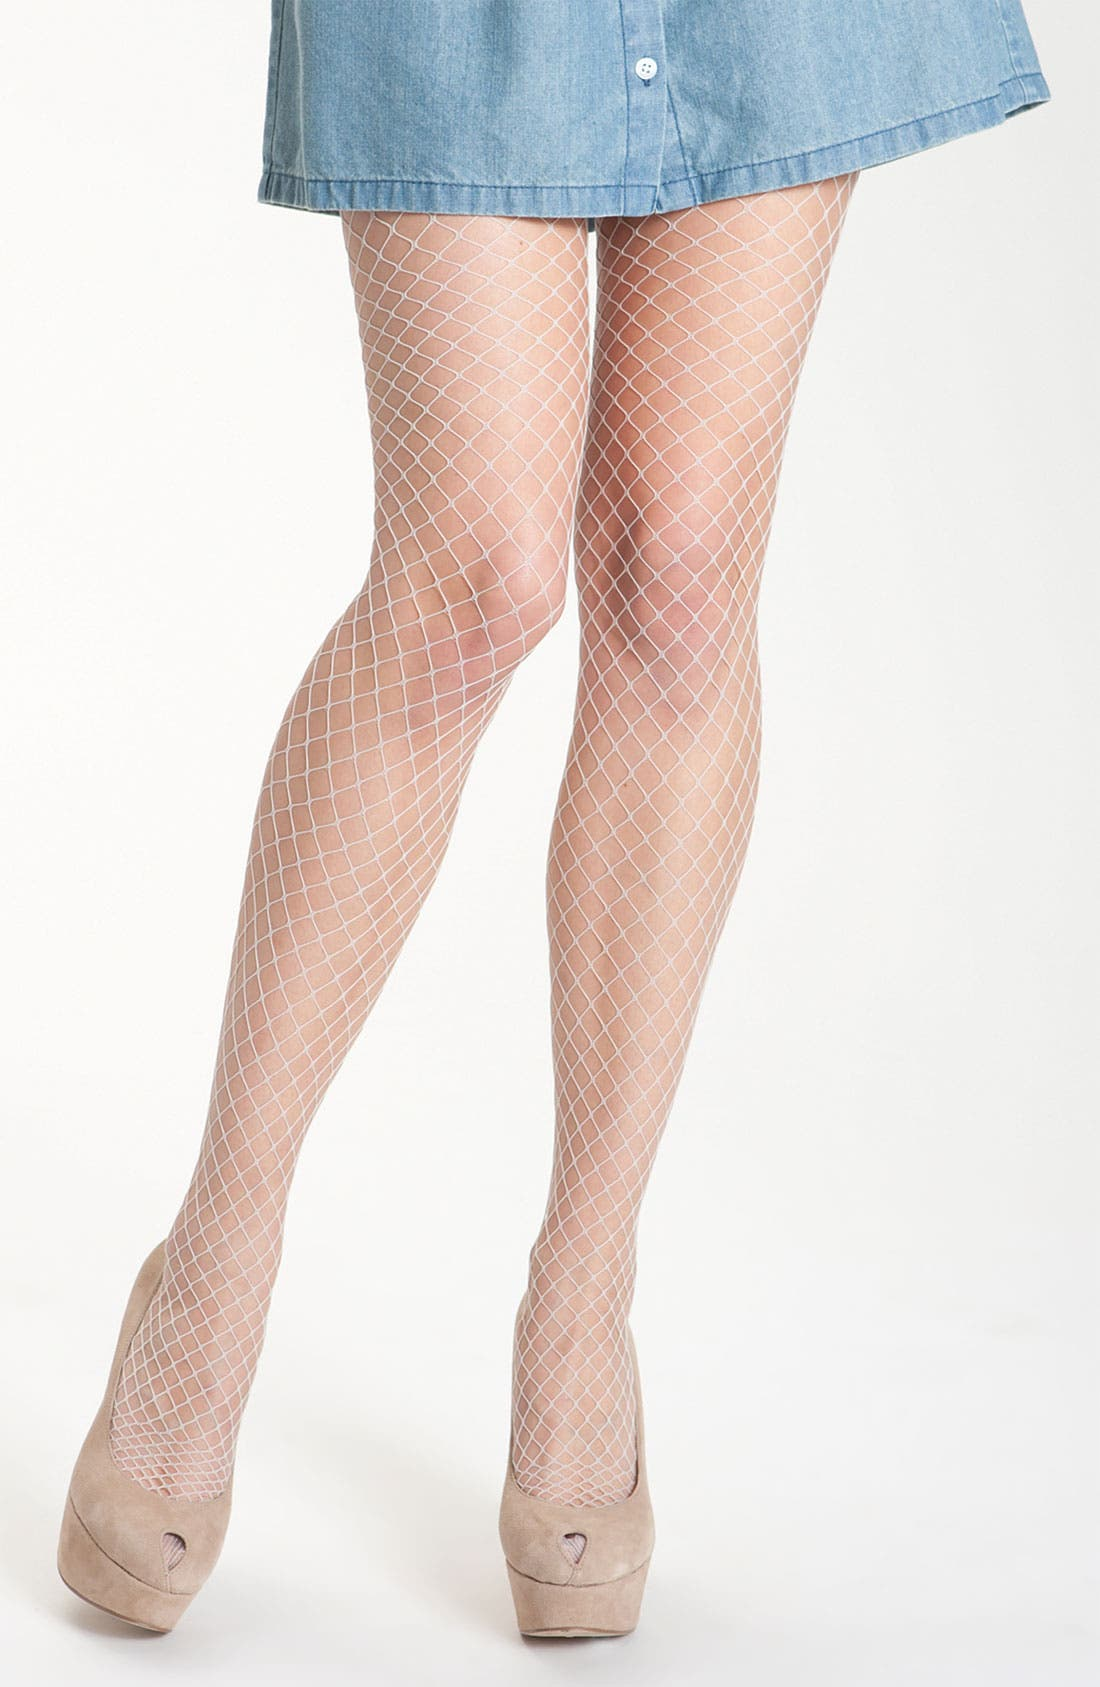 Main Image - Pretty Polly Fishnet Stockings (2-Pack)